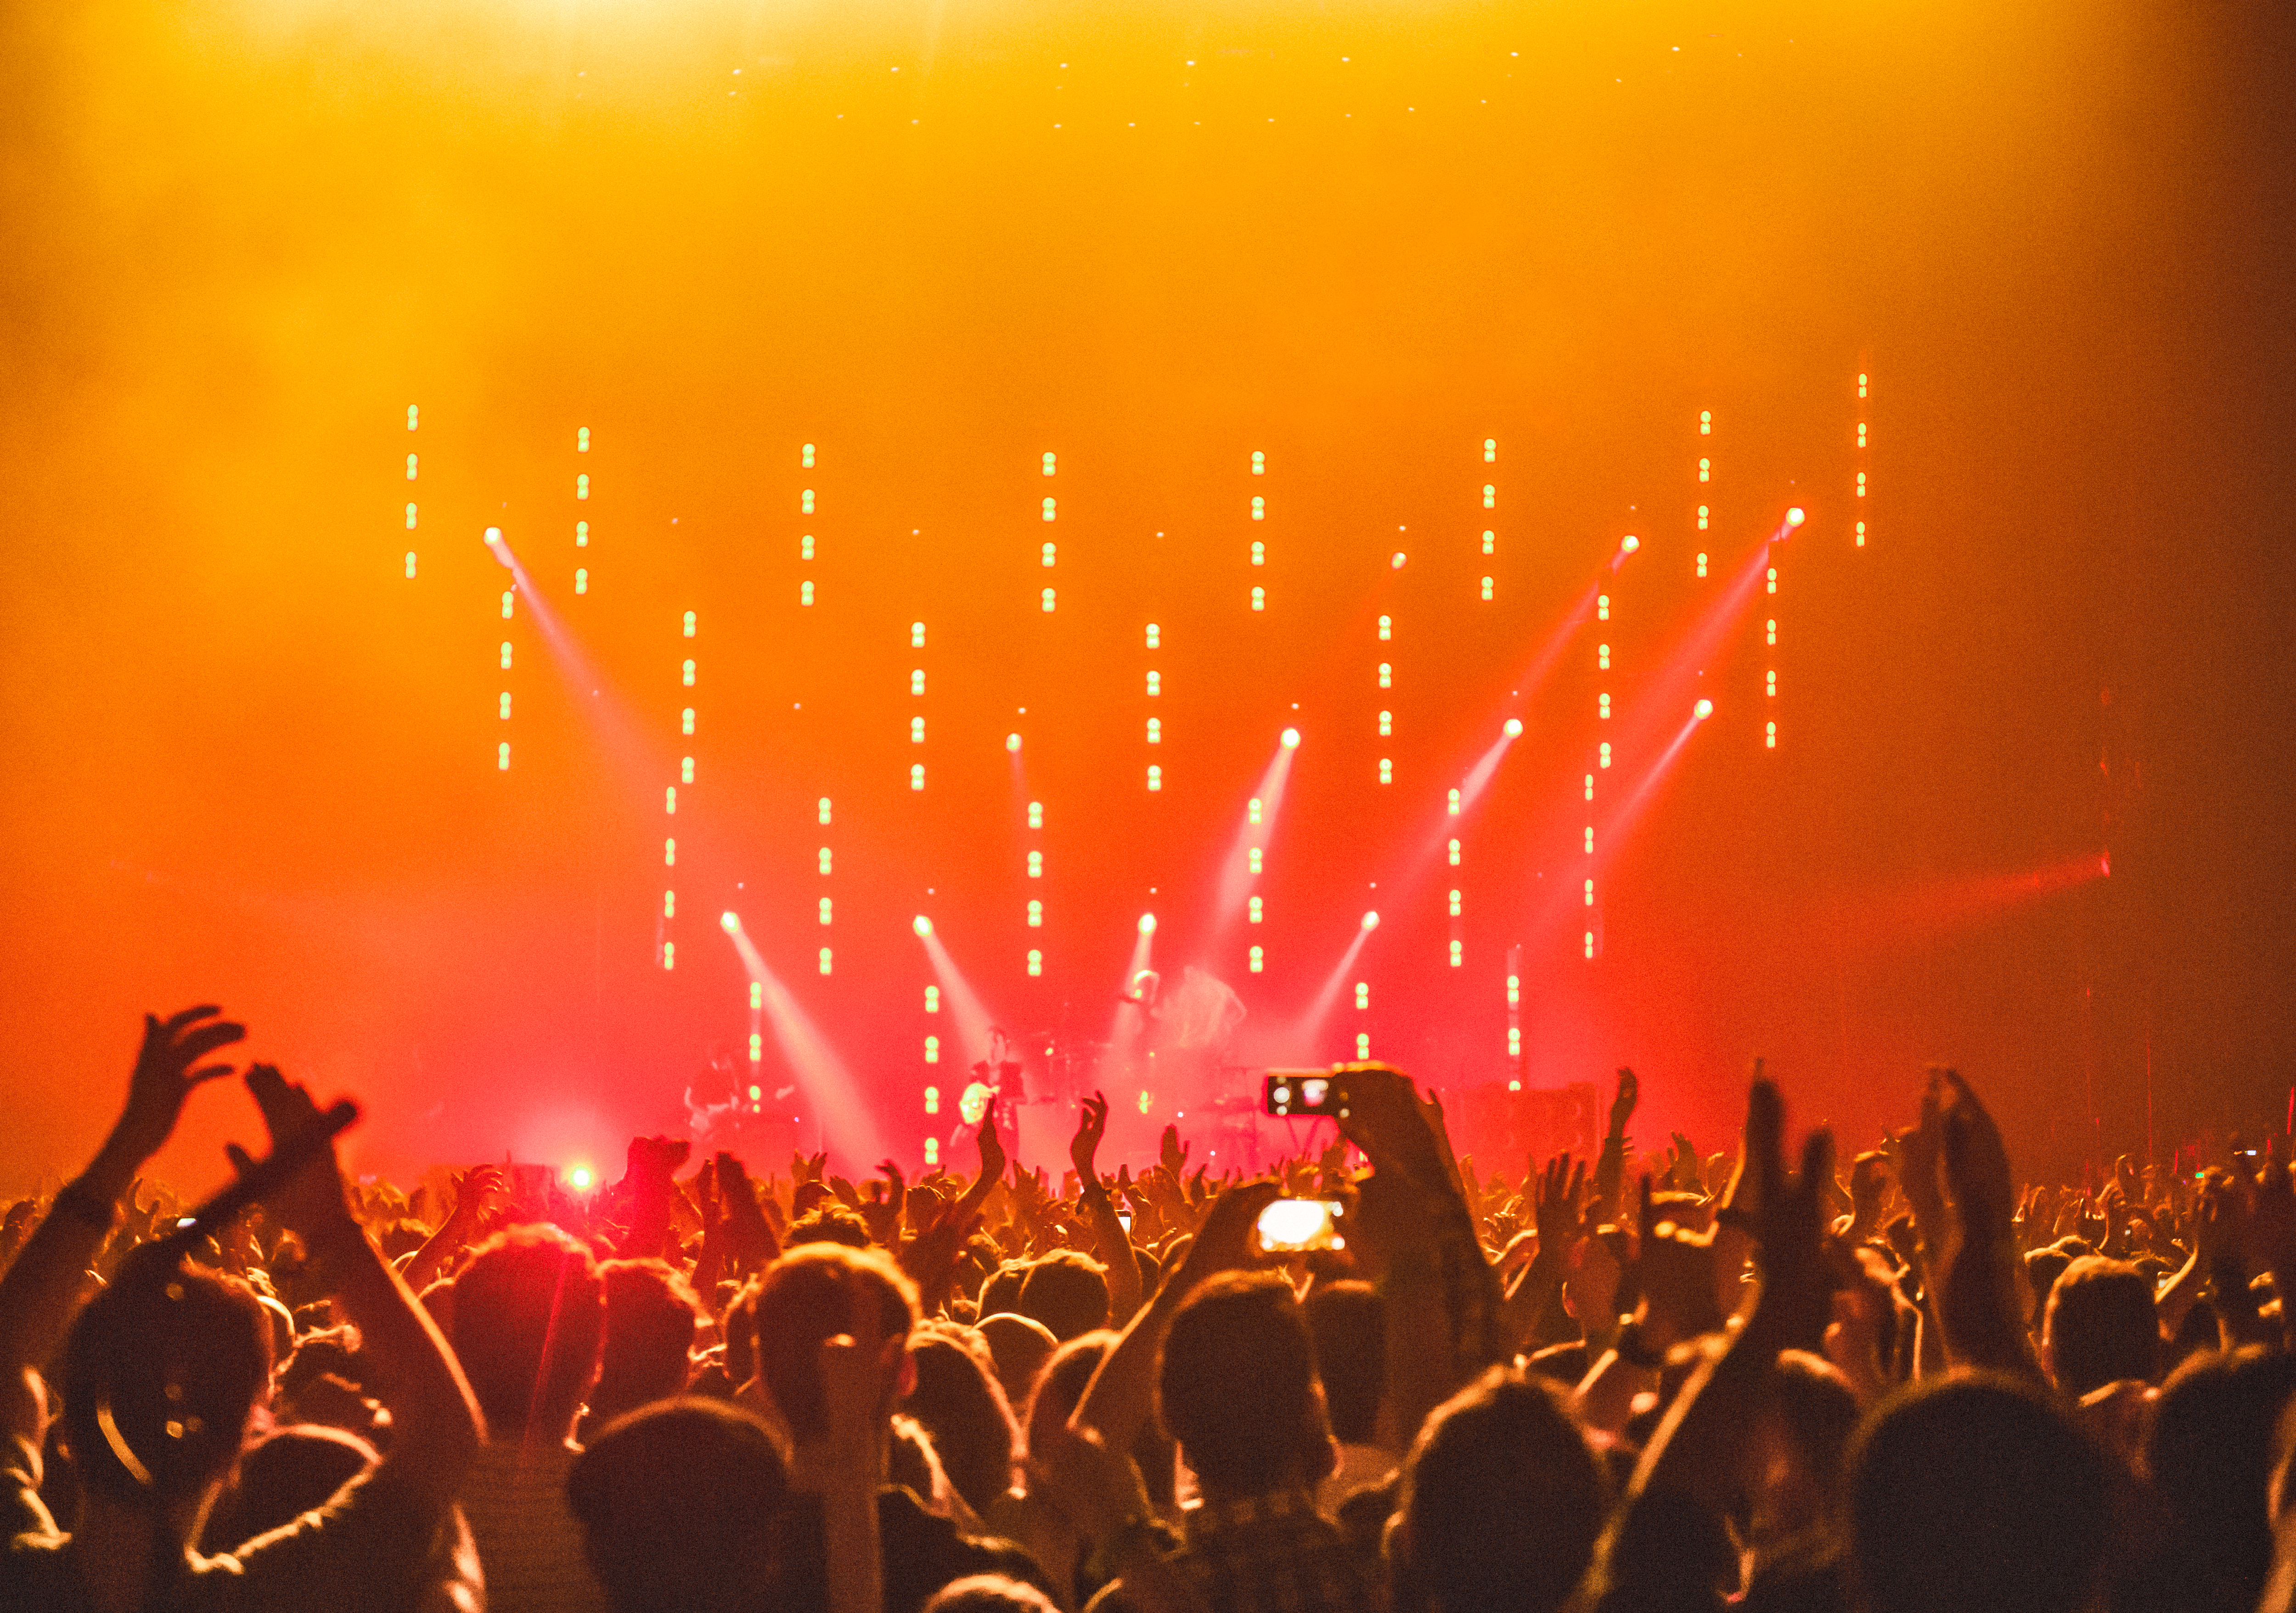 Best Wallpapers For Iphone 6 Hd 250 Engaging Concert Photos 183 Pexels 183 Free Stock Photos